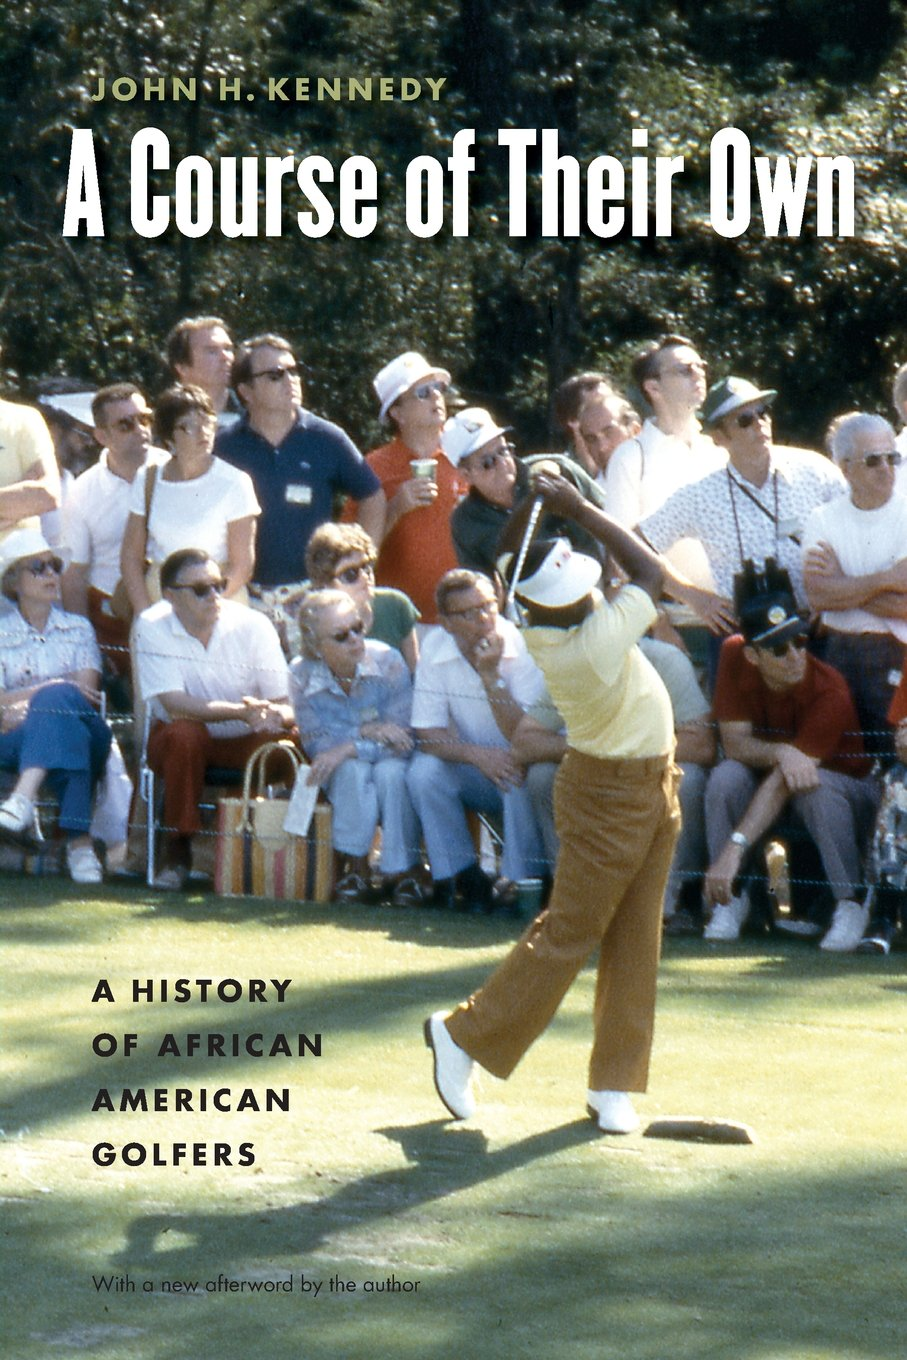 a-course-of-their-own-a-history-of-african-american-golfers